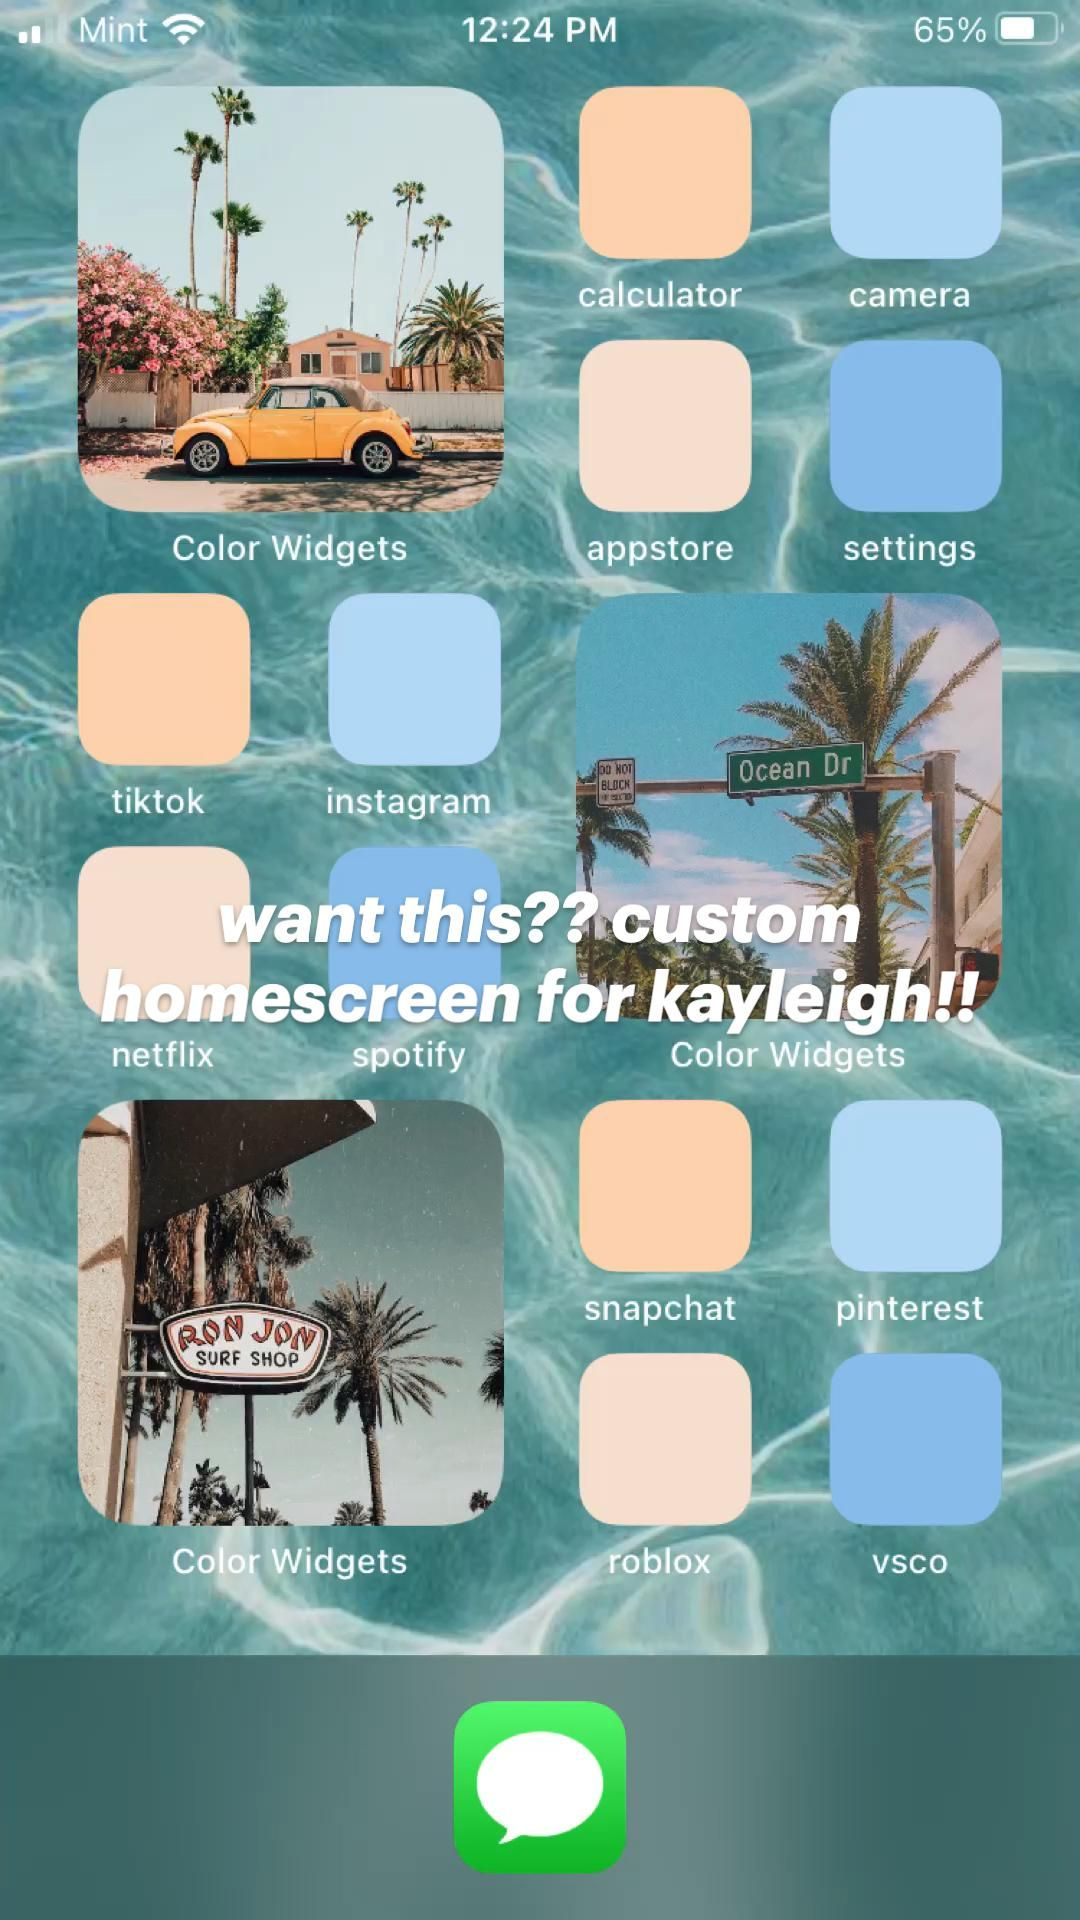 want this?? custom homescreen for kayleigh!!